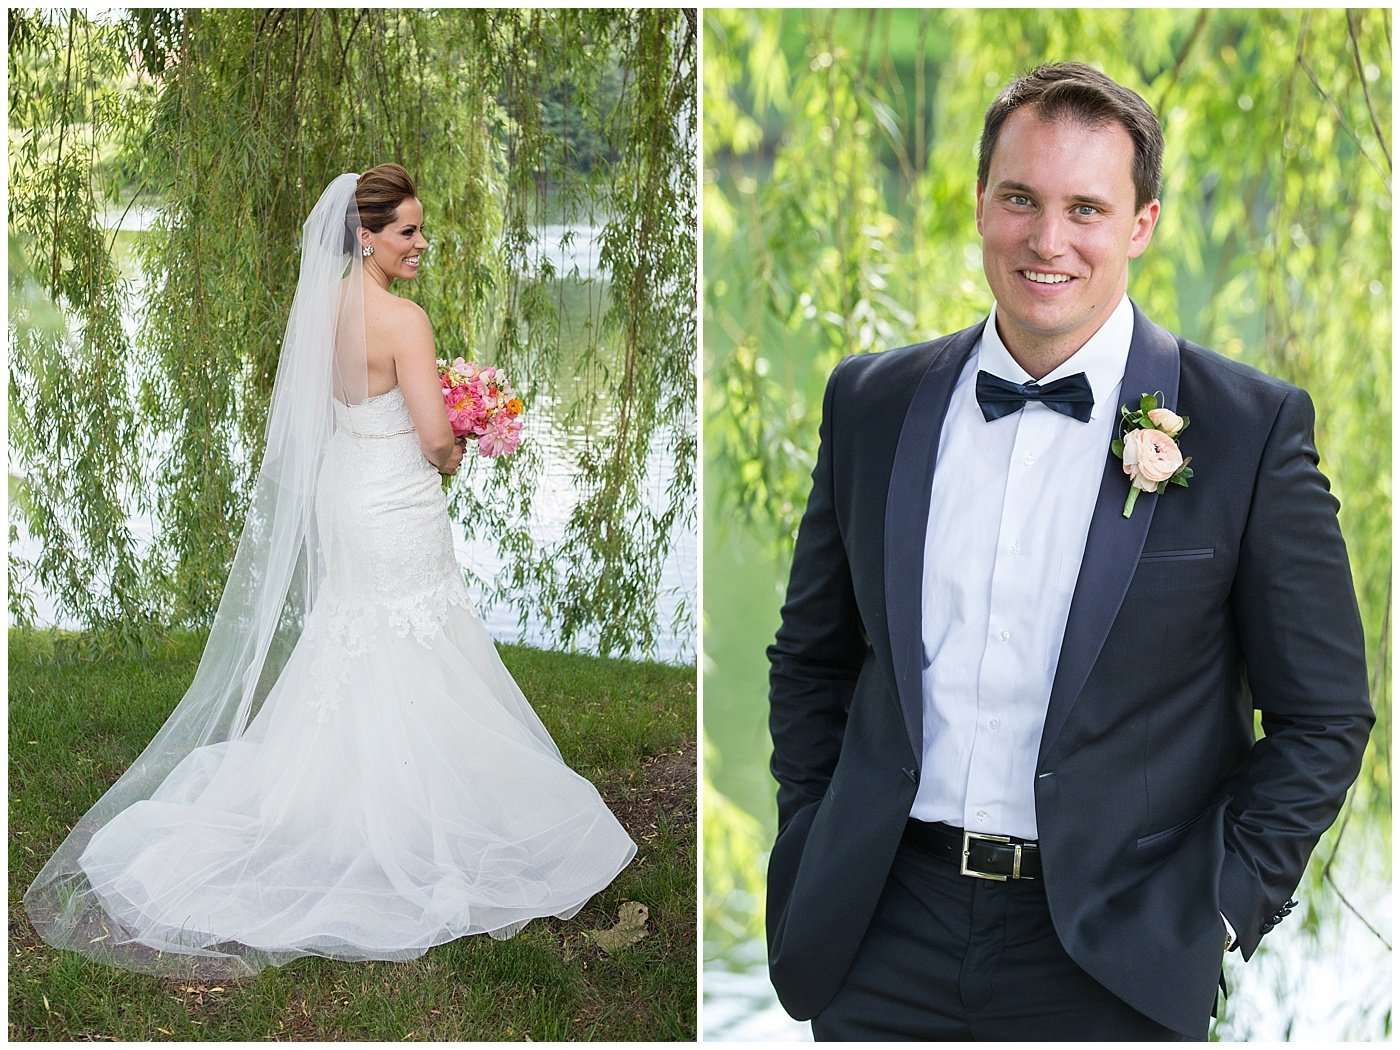 Kim & Lee | A Summer Wedding at Brookside Country Club 58